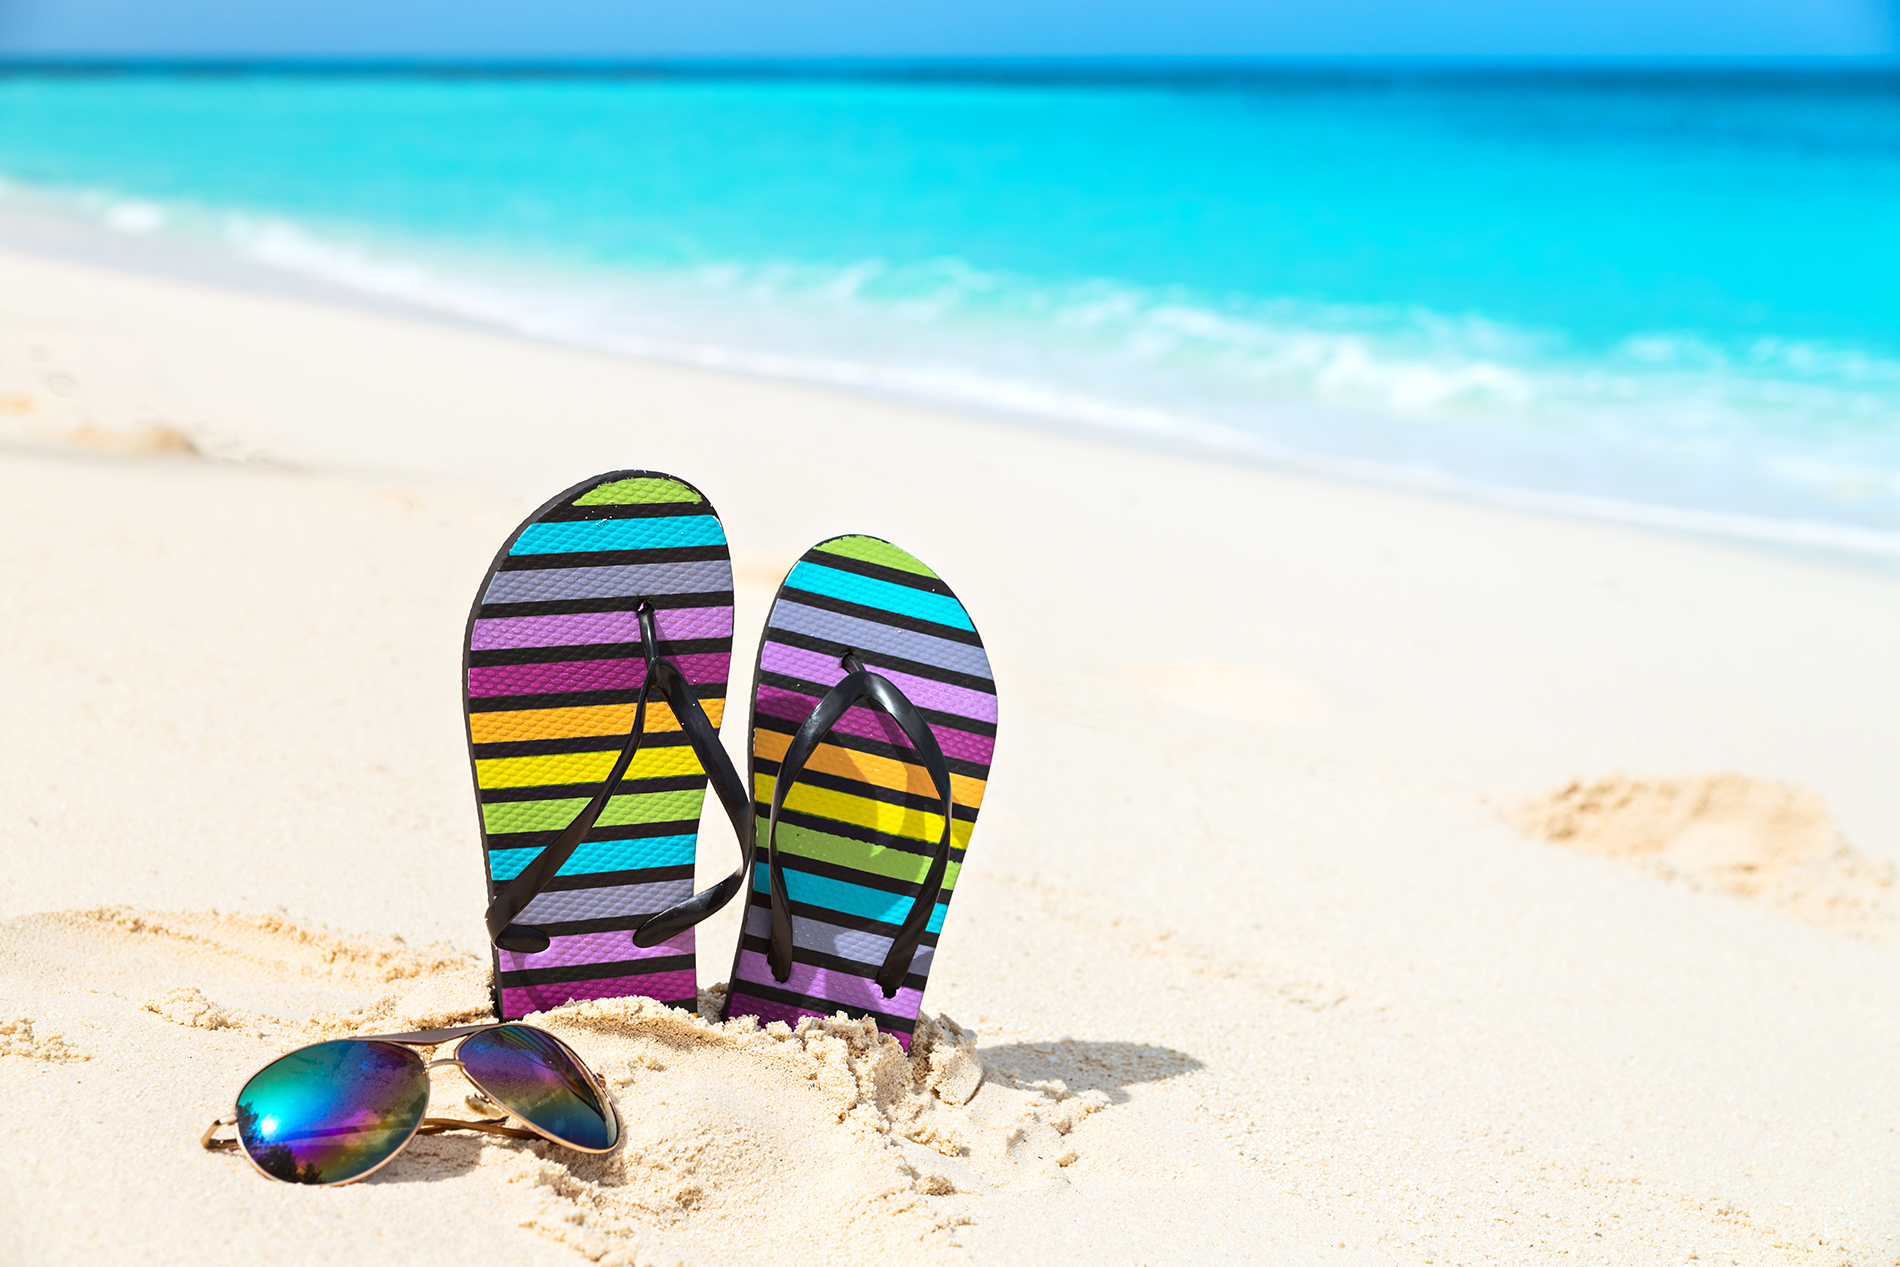 Sunglasses and bright on the beach slippers 53776